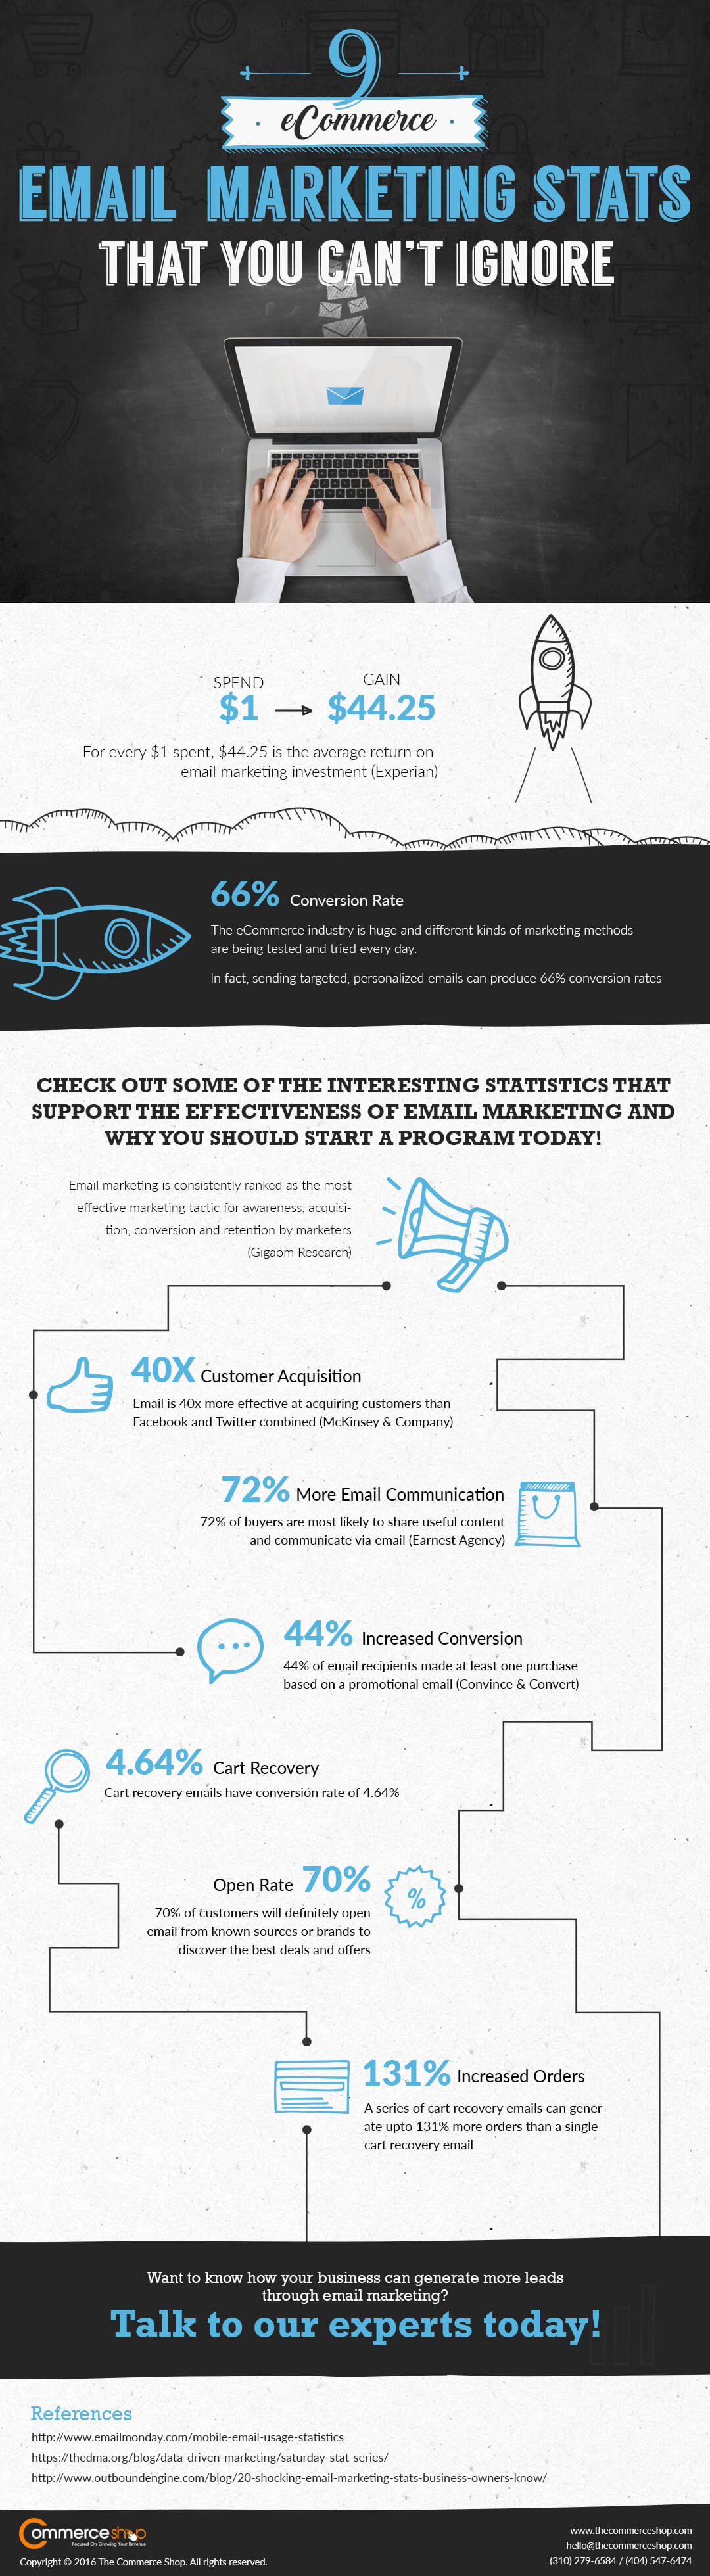 9-ecommerce-email-marketing-stats-that-you-cant-ignore-infographic-plaza